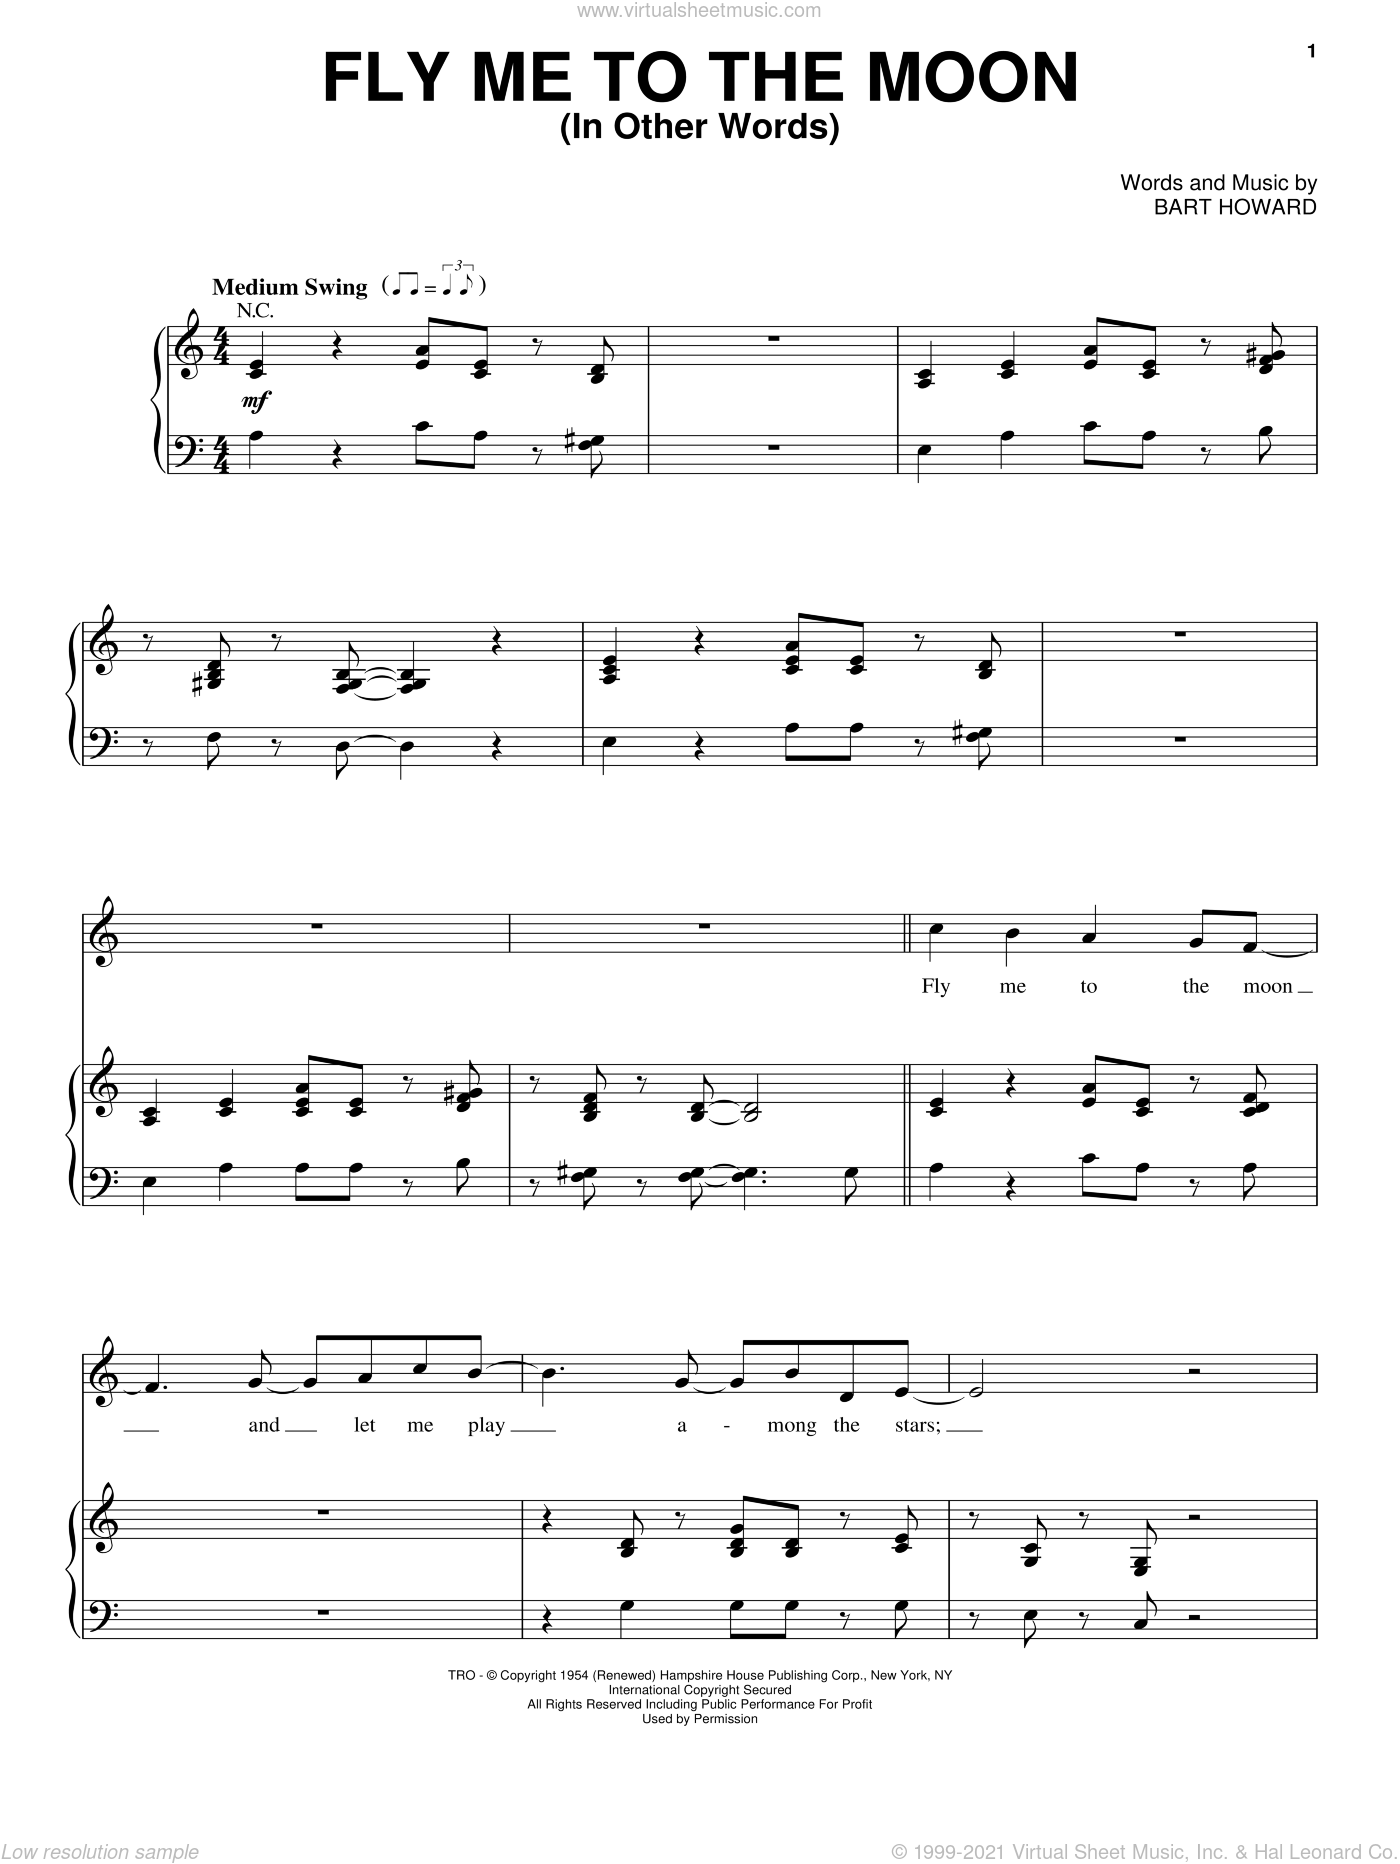 Fly Me To The Moon (In Other Words) sheet music for voice and piano by Steve Tyrell, Frank Sinatra and Bart Howard, wedding score, intermediate skill level